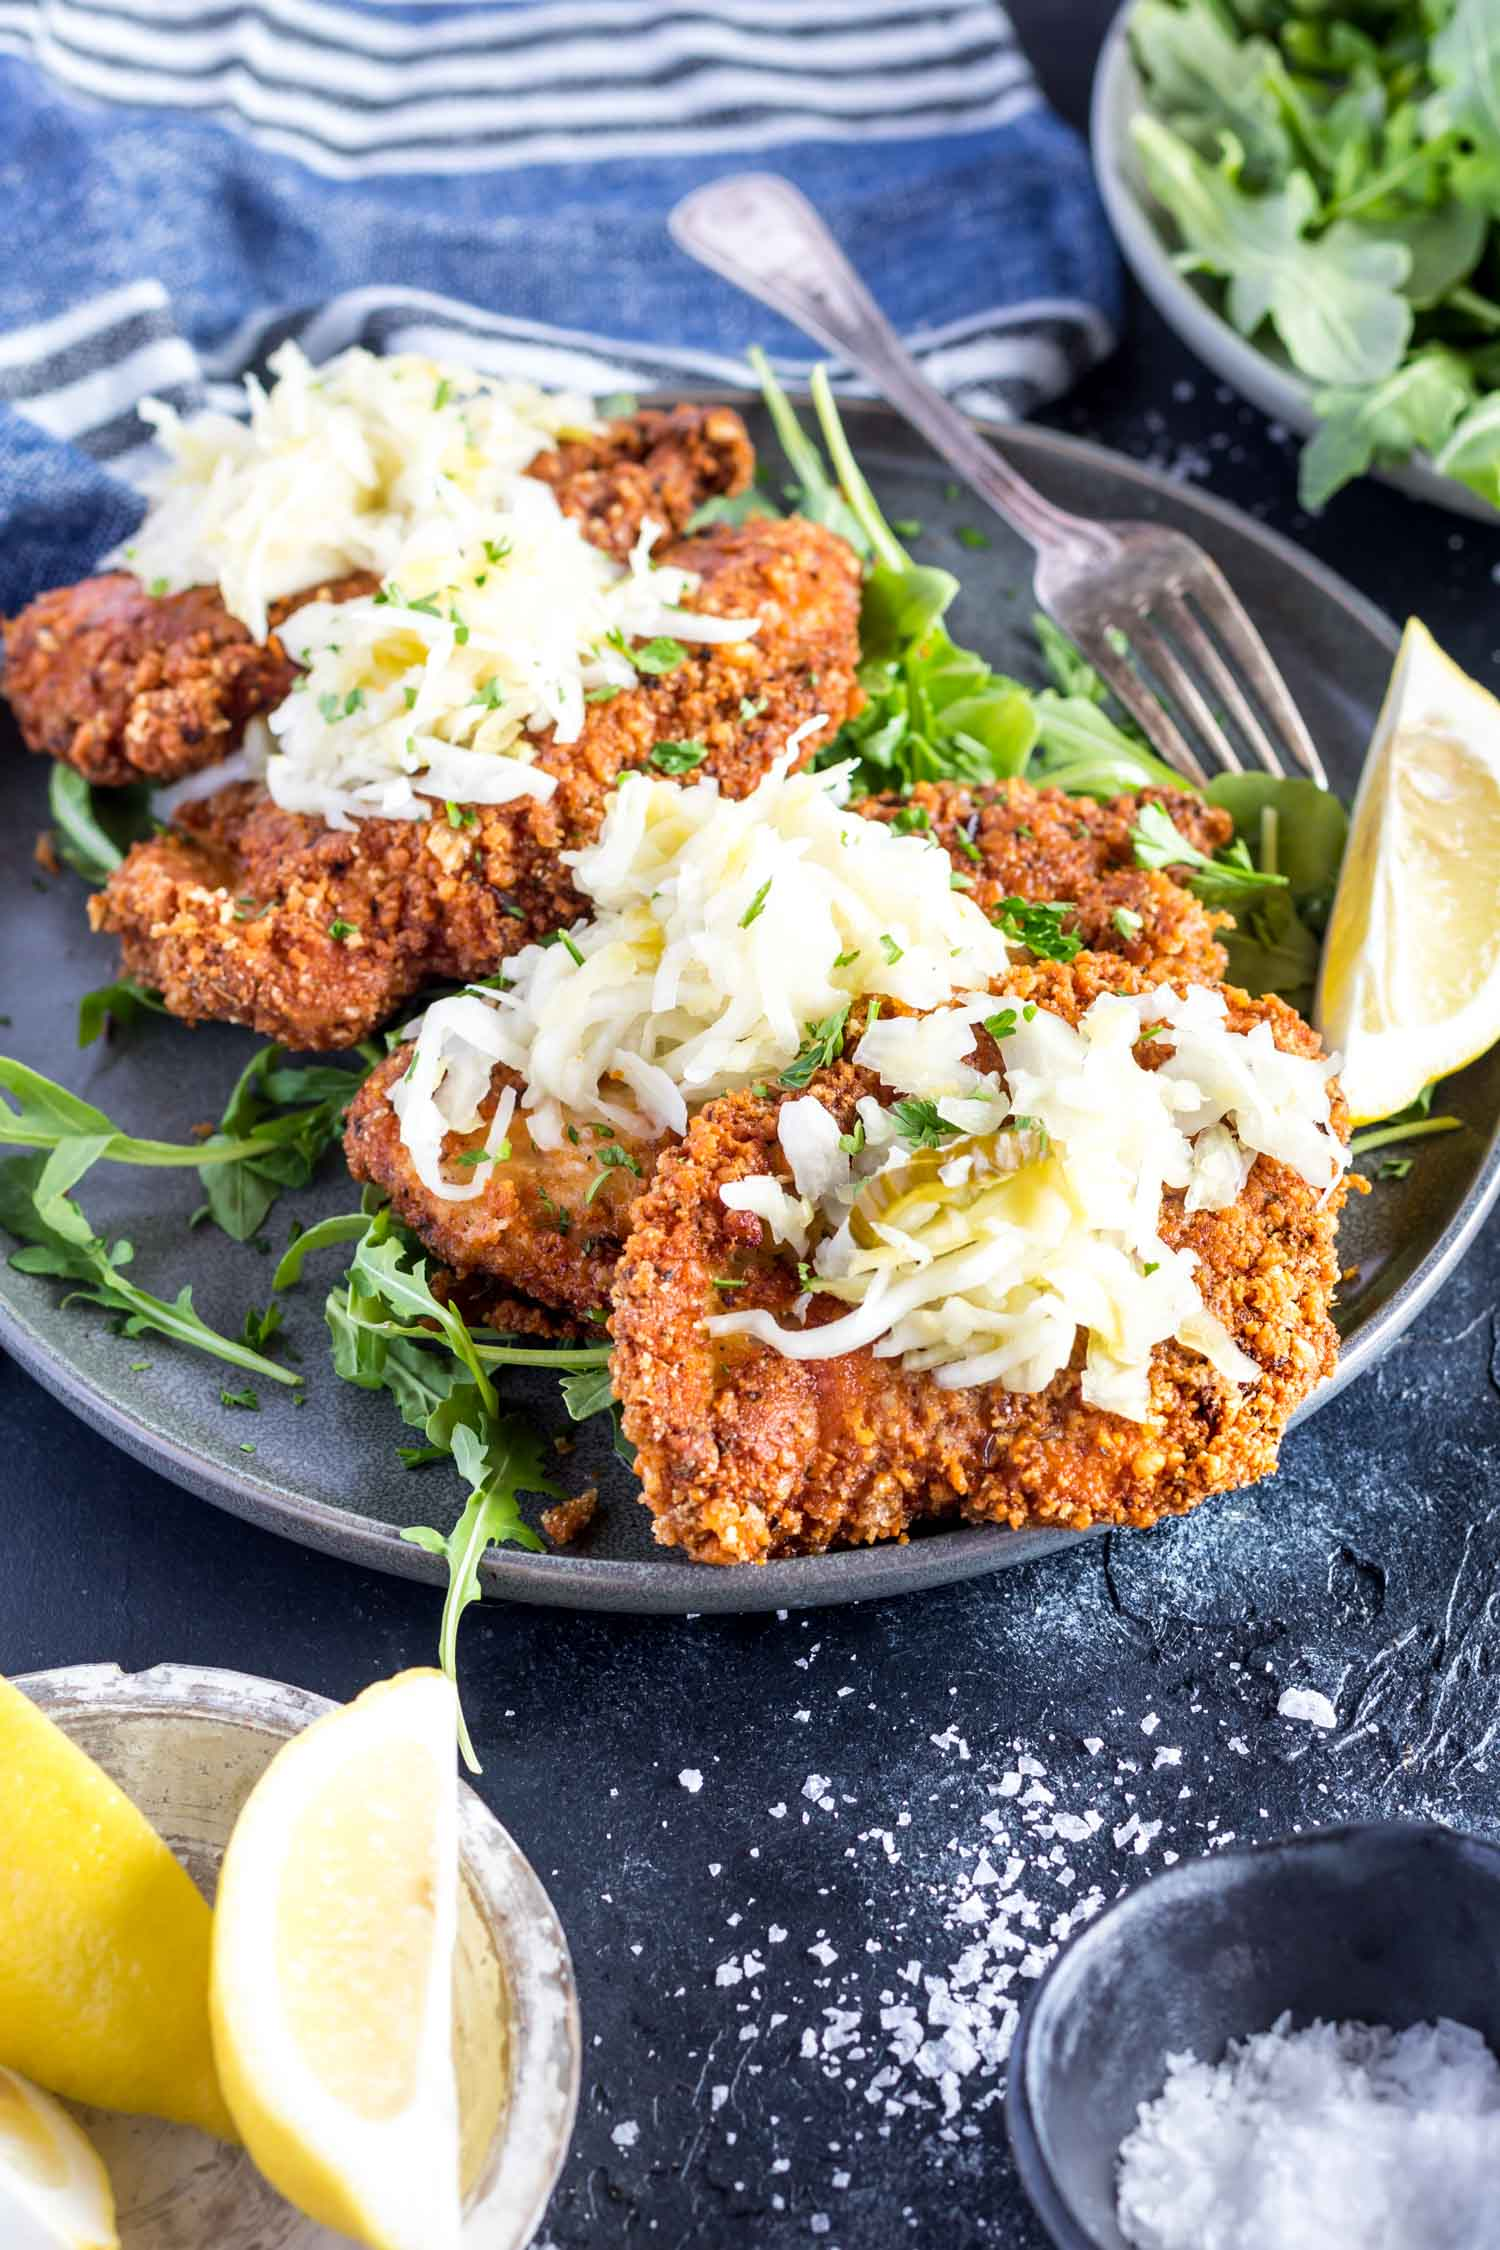 Keto Schnitzel on a plate topped with sauerkraut and served with arugula and lemon wedges